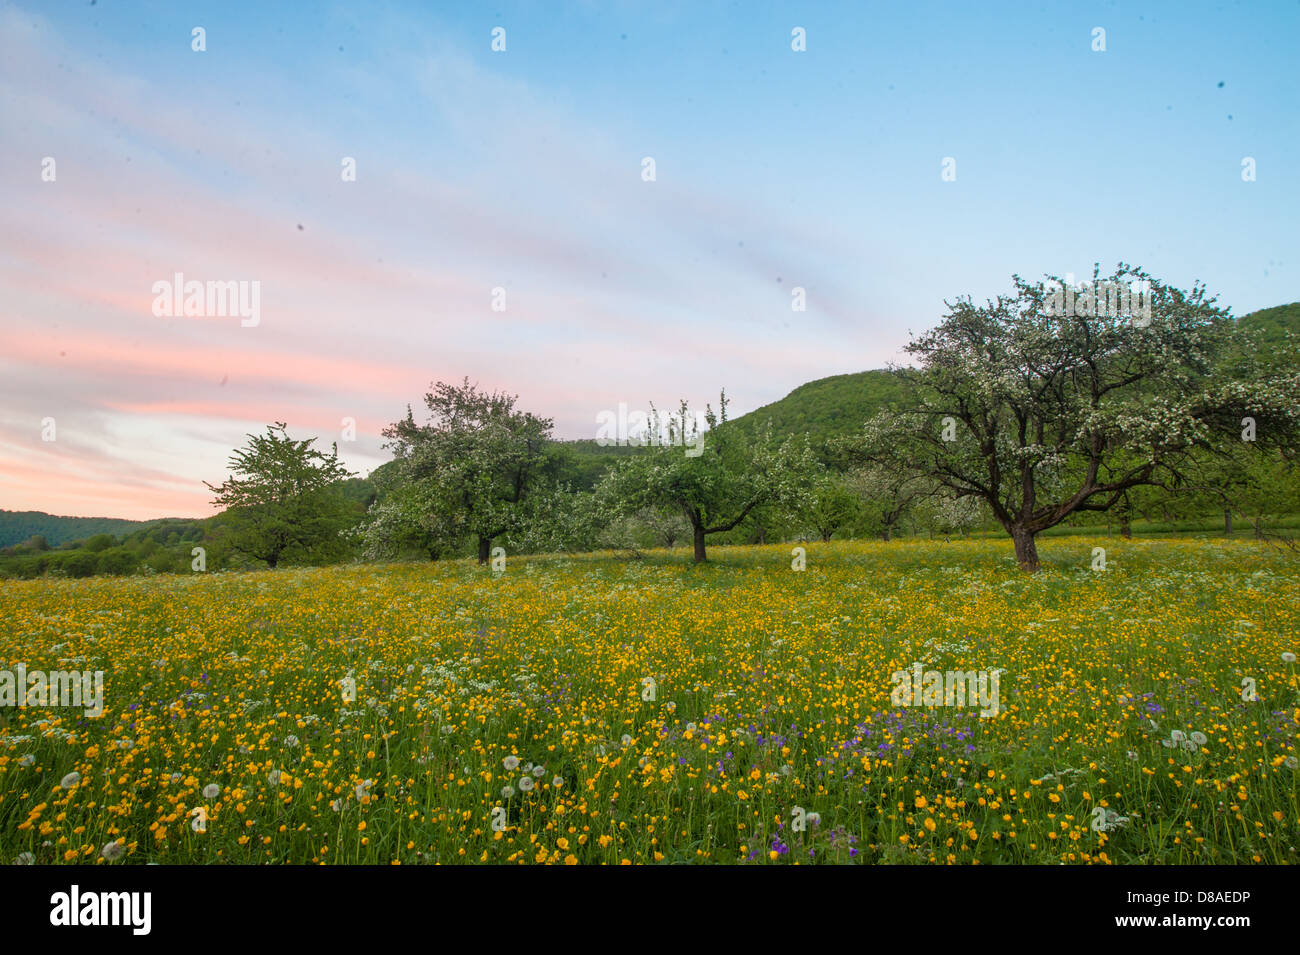 wildflower meadow with flowering fruit trees,buttercups and other flowers in spring, Biosphere Reserve Schwaebische - Stock Image